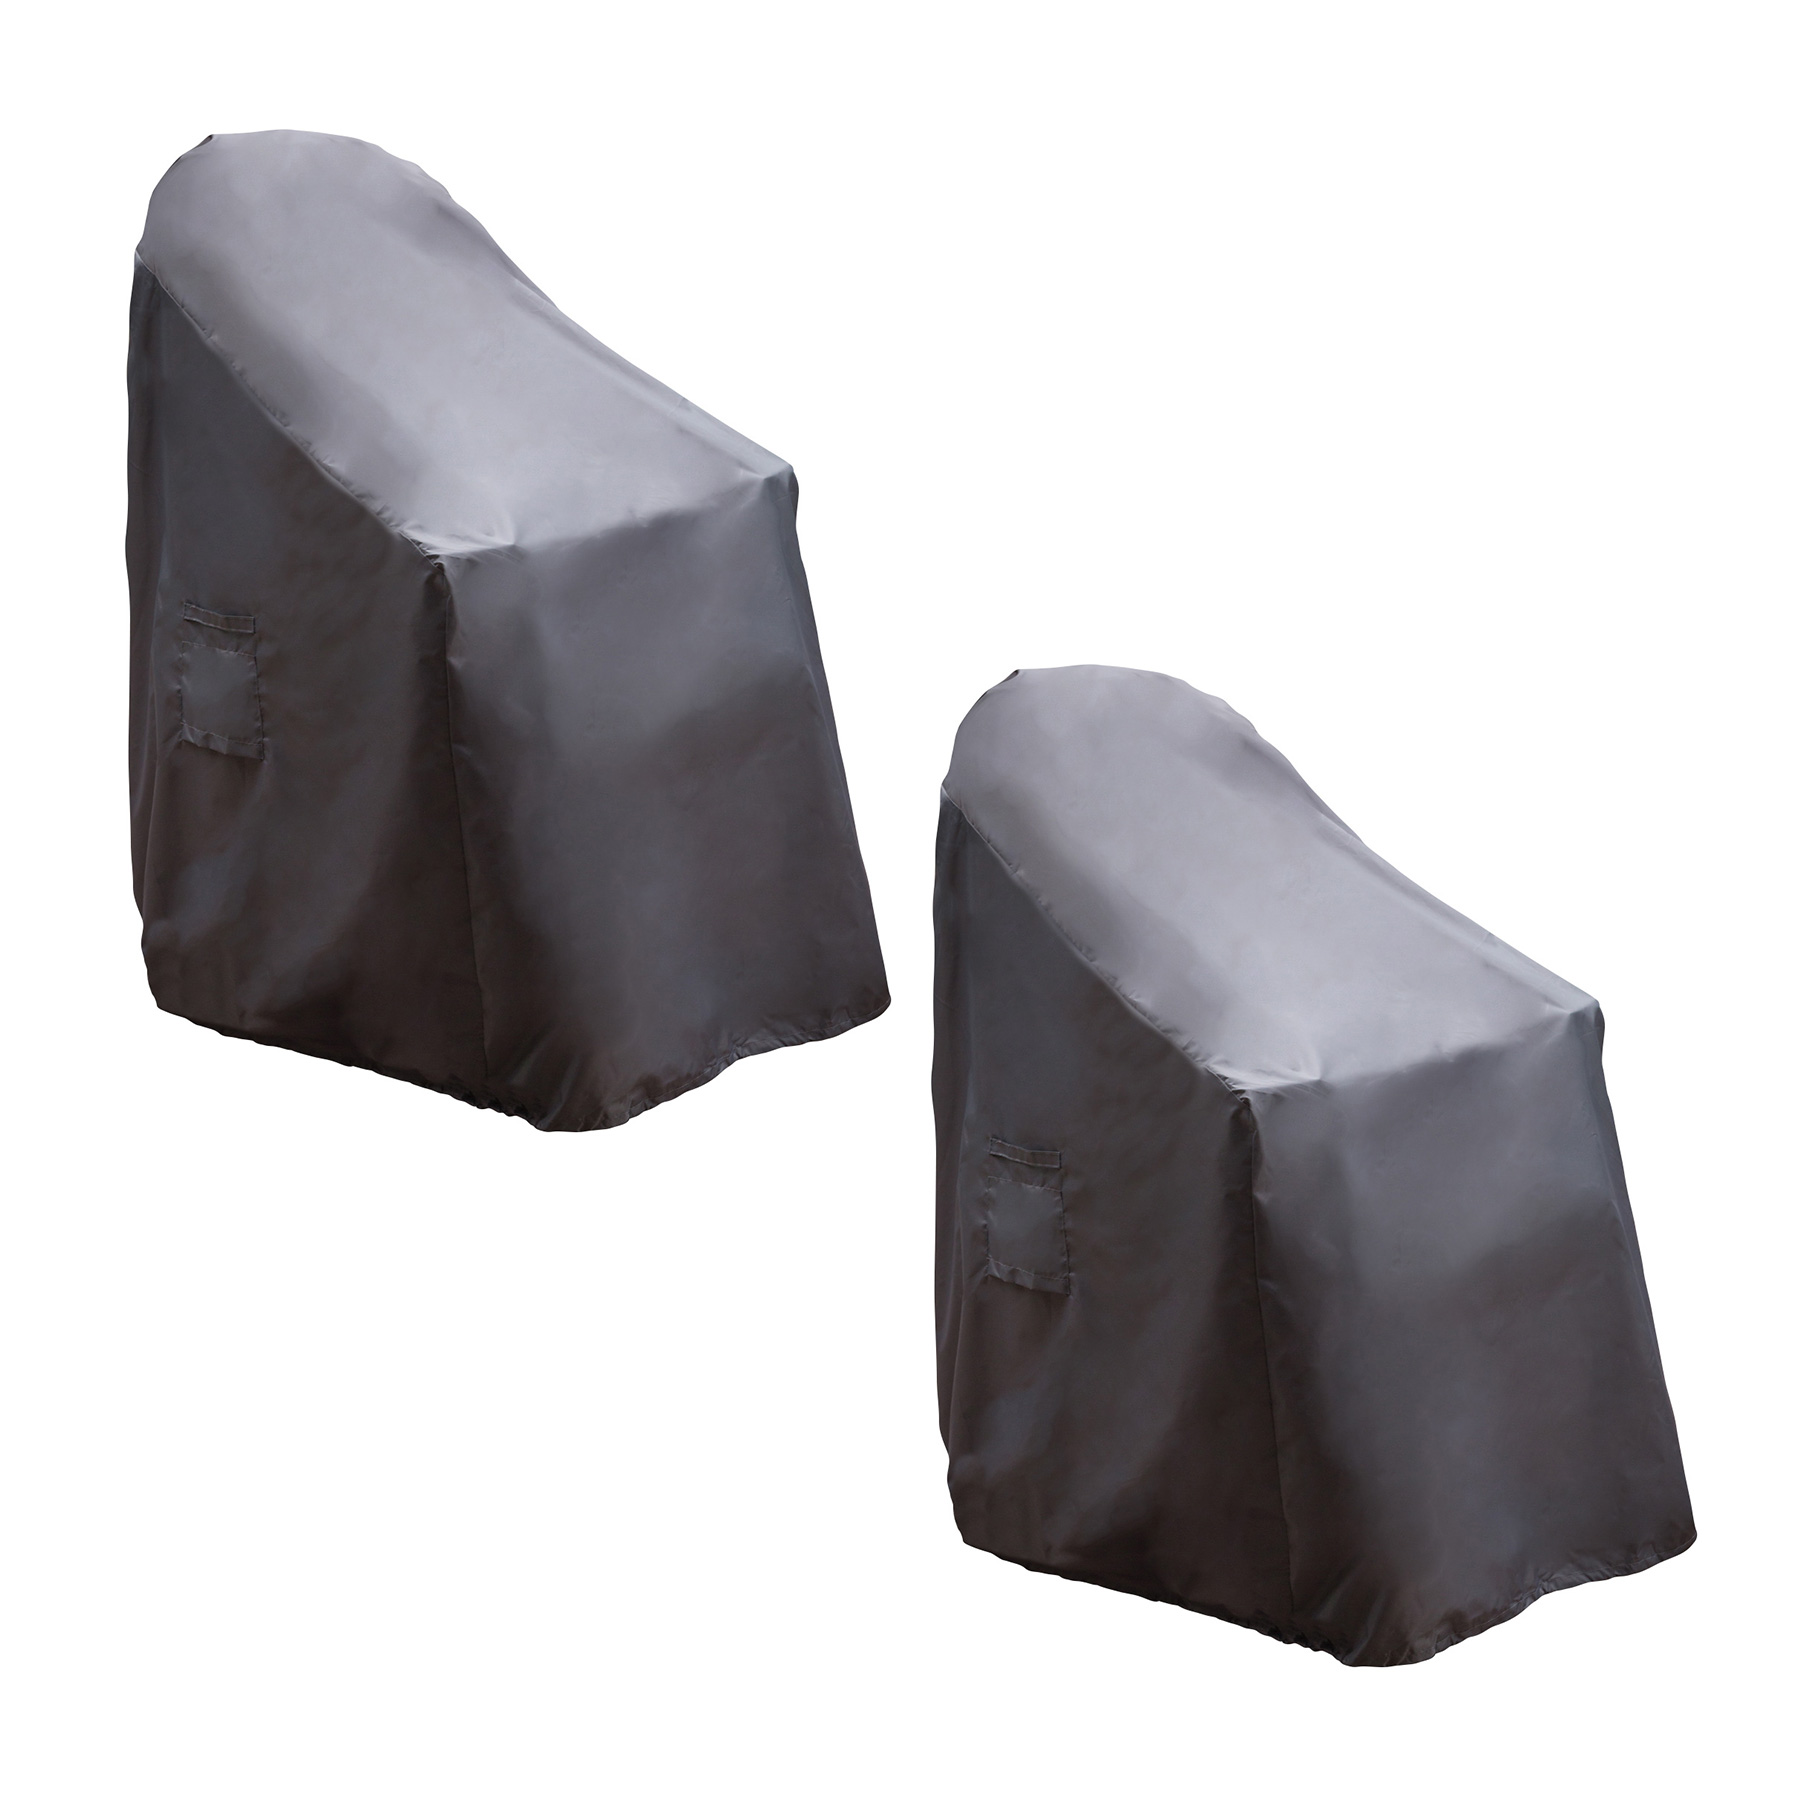 Reusable Revolution Stackable Chair Patio Furniture Cover (2 Pack) by Reusable Revolution